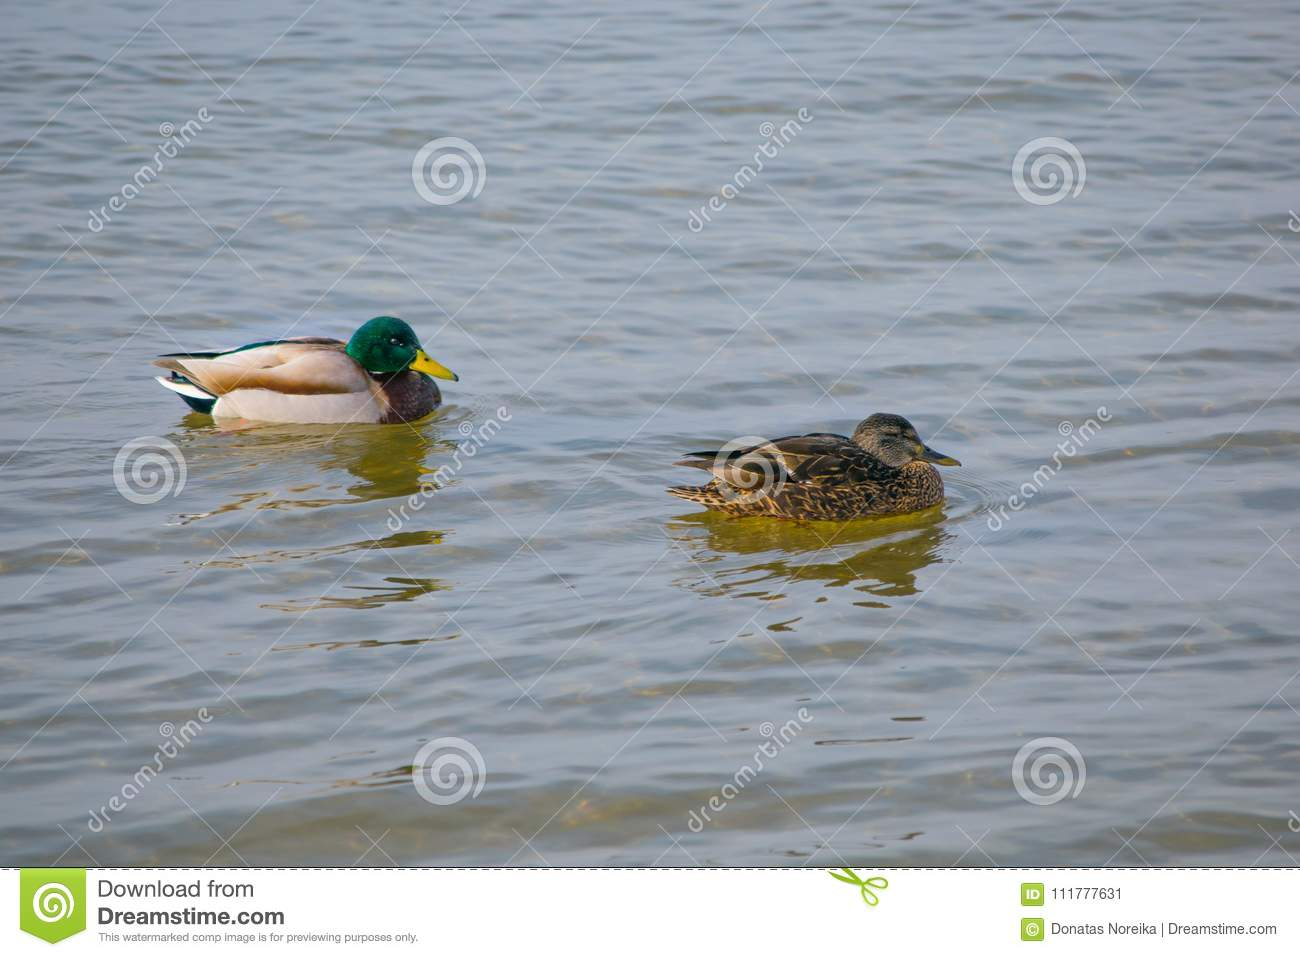 Two ducks in the water